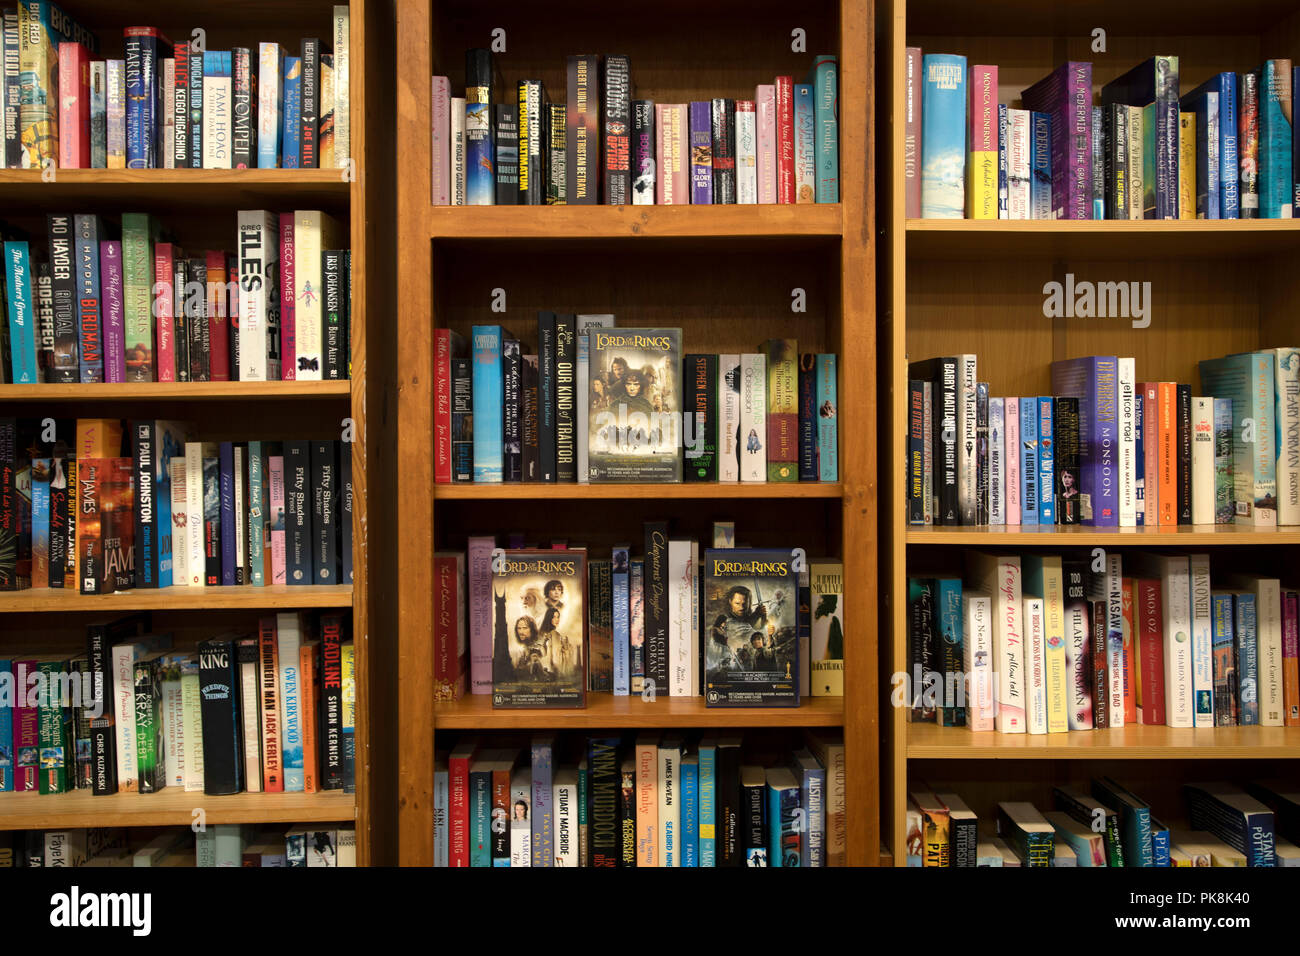 Library book shelves with the Lord of the Rings Trilogy - Stock Image